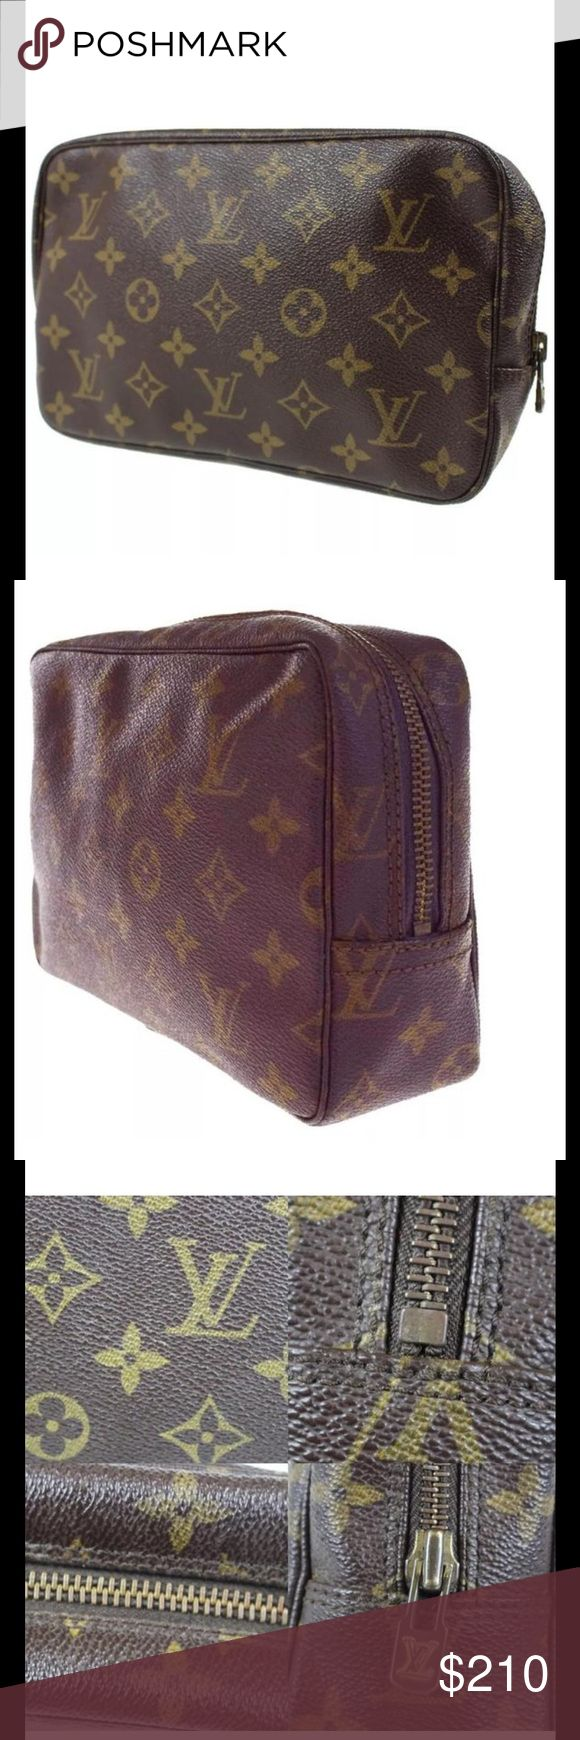 Auth Louis Vuitton cosmetics bag Med size. Nice, used, vintage. Authentic Louis Vuitton Bags Cosmetic Bags & Cases